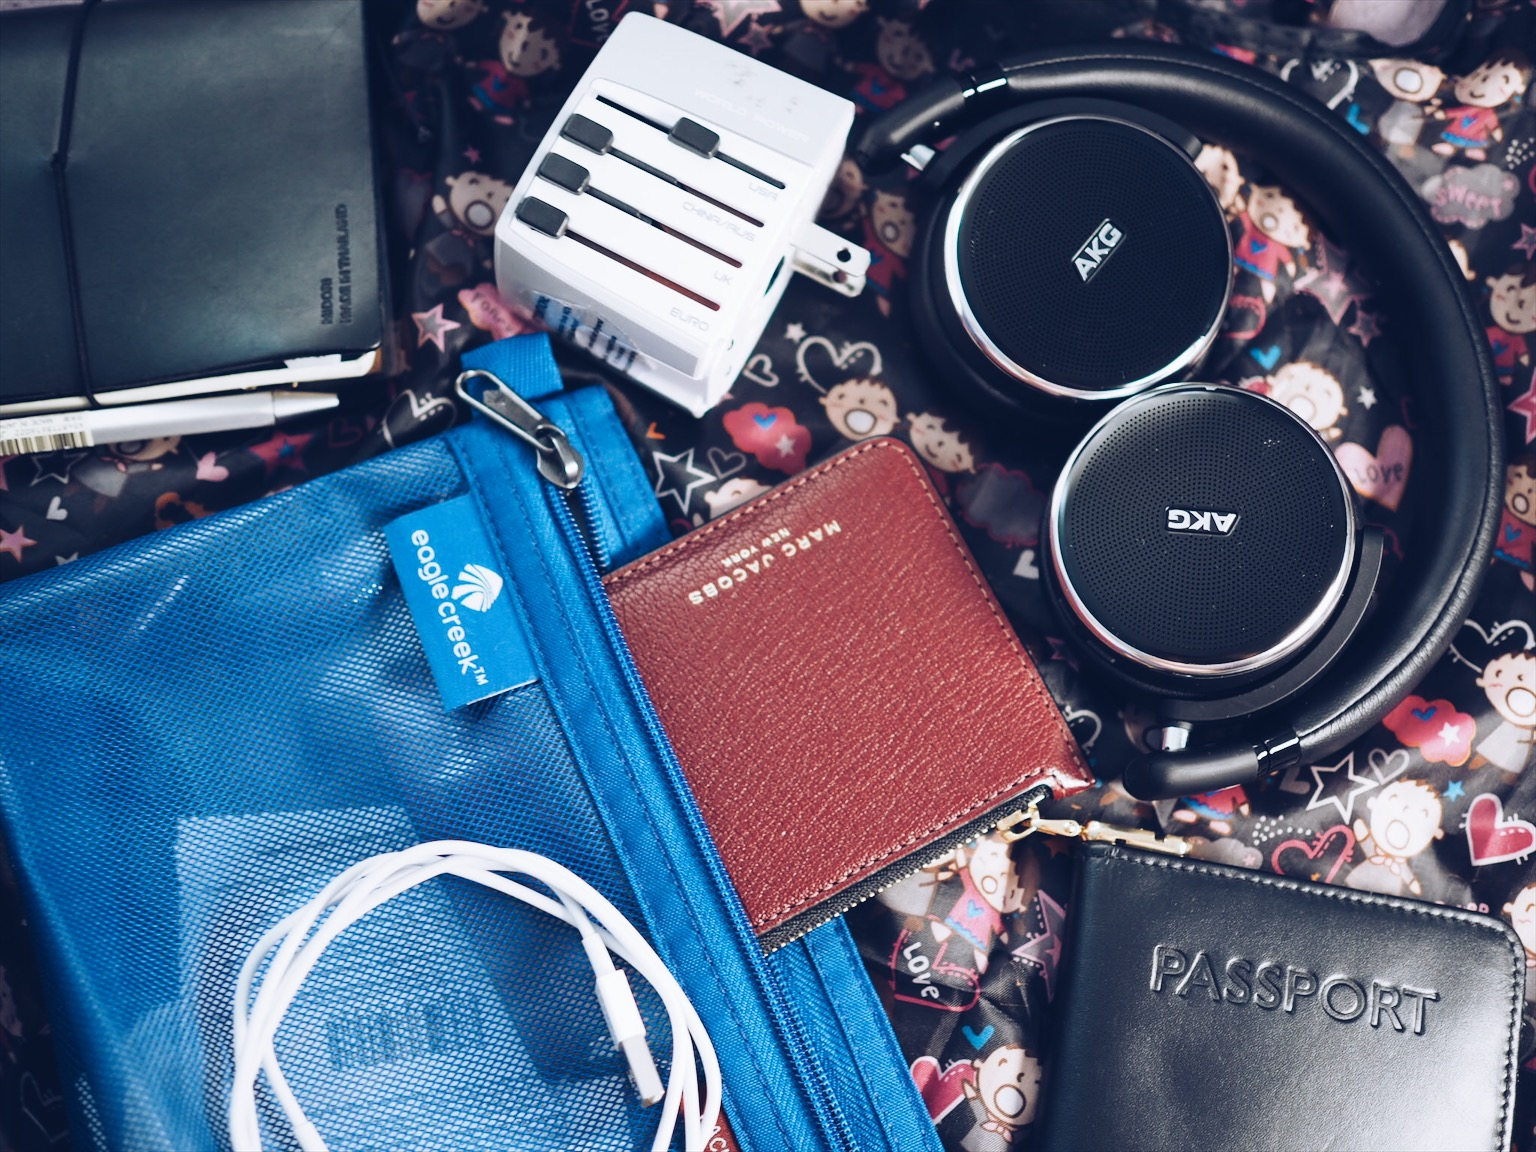 Carry on travel essentials - I won't leave the house without